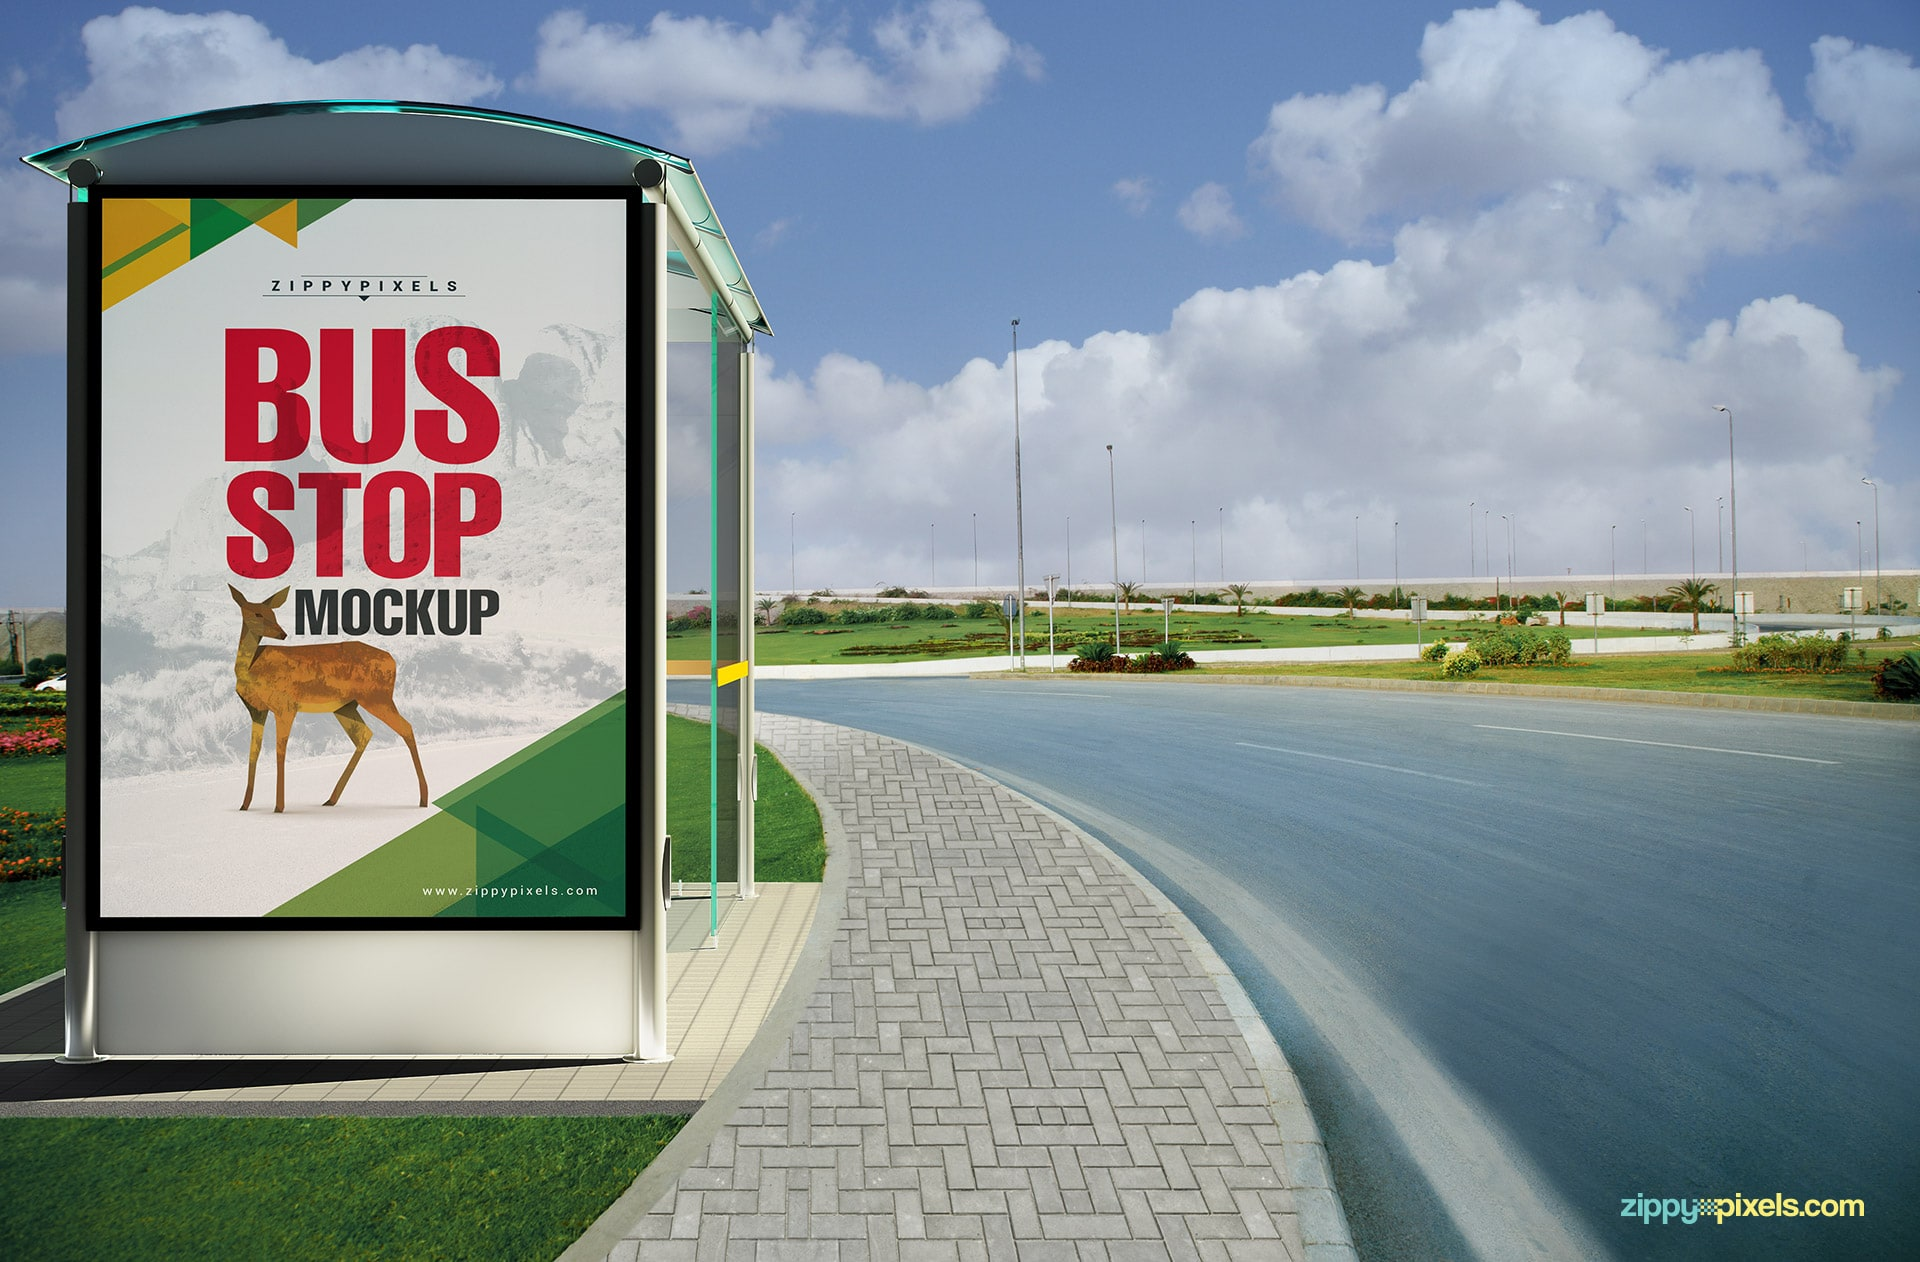 A bus stop advertisiment mockup